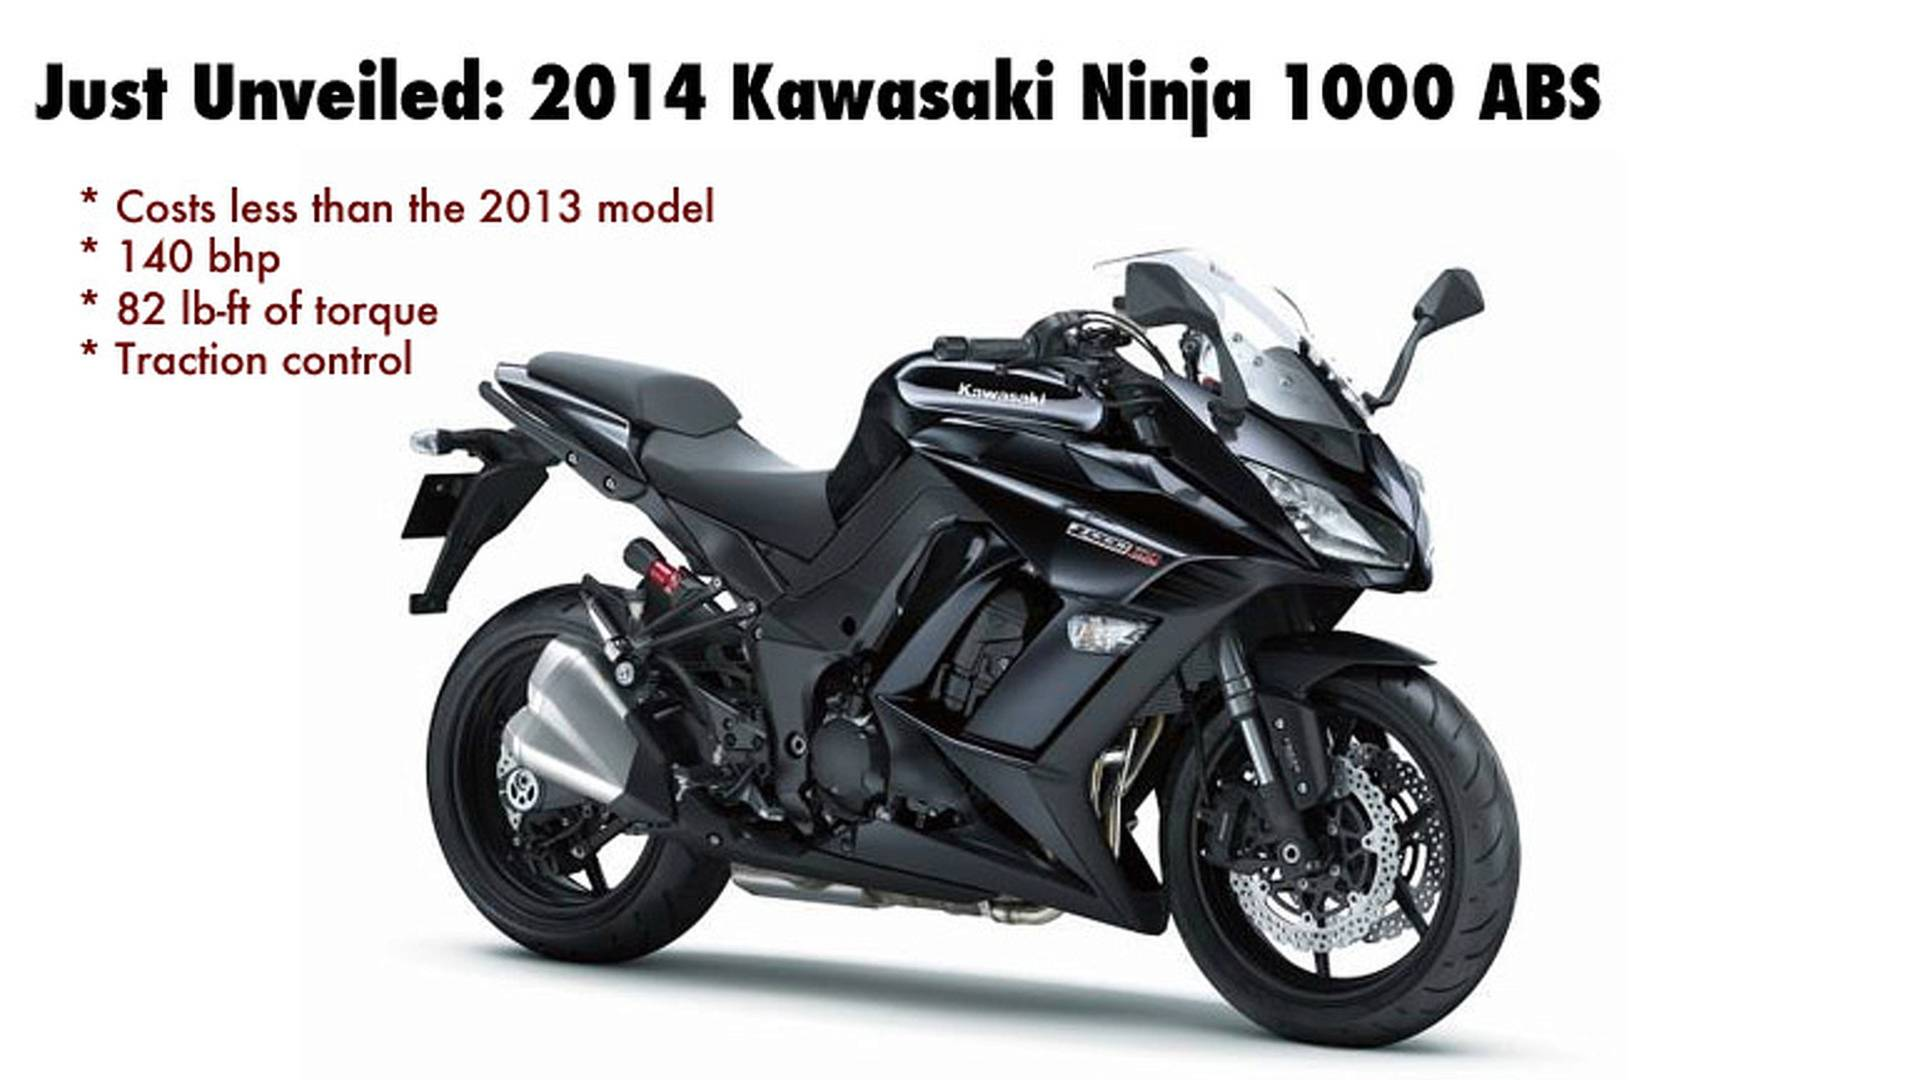 2014 Kawasaki Ninja 1000 ABS Upgraded With More Power, More Practicality